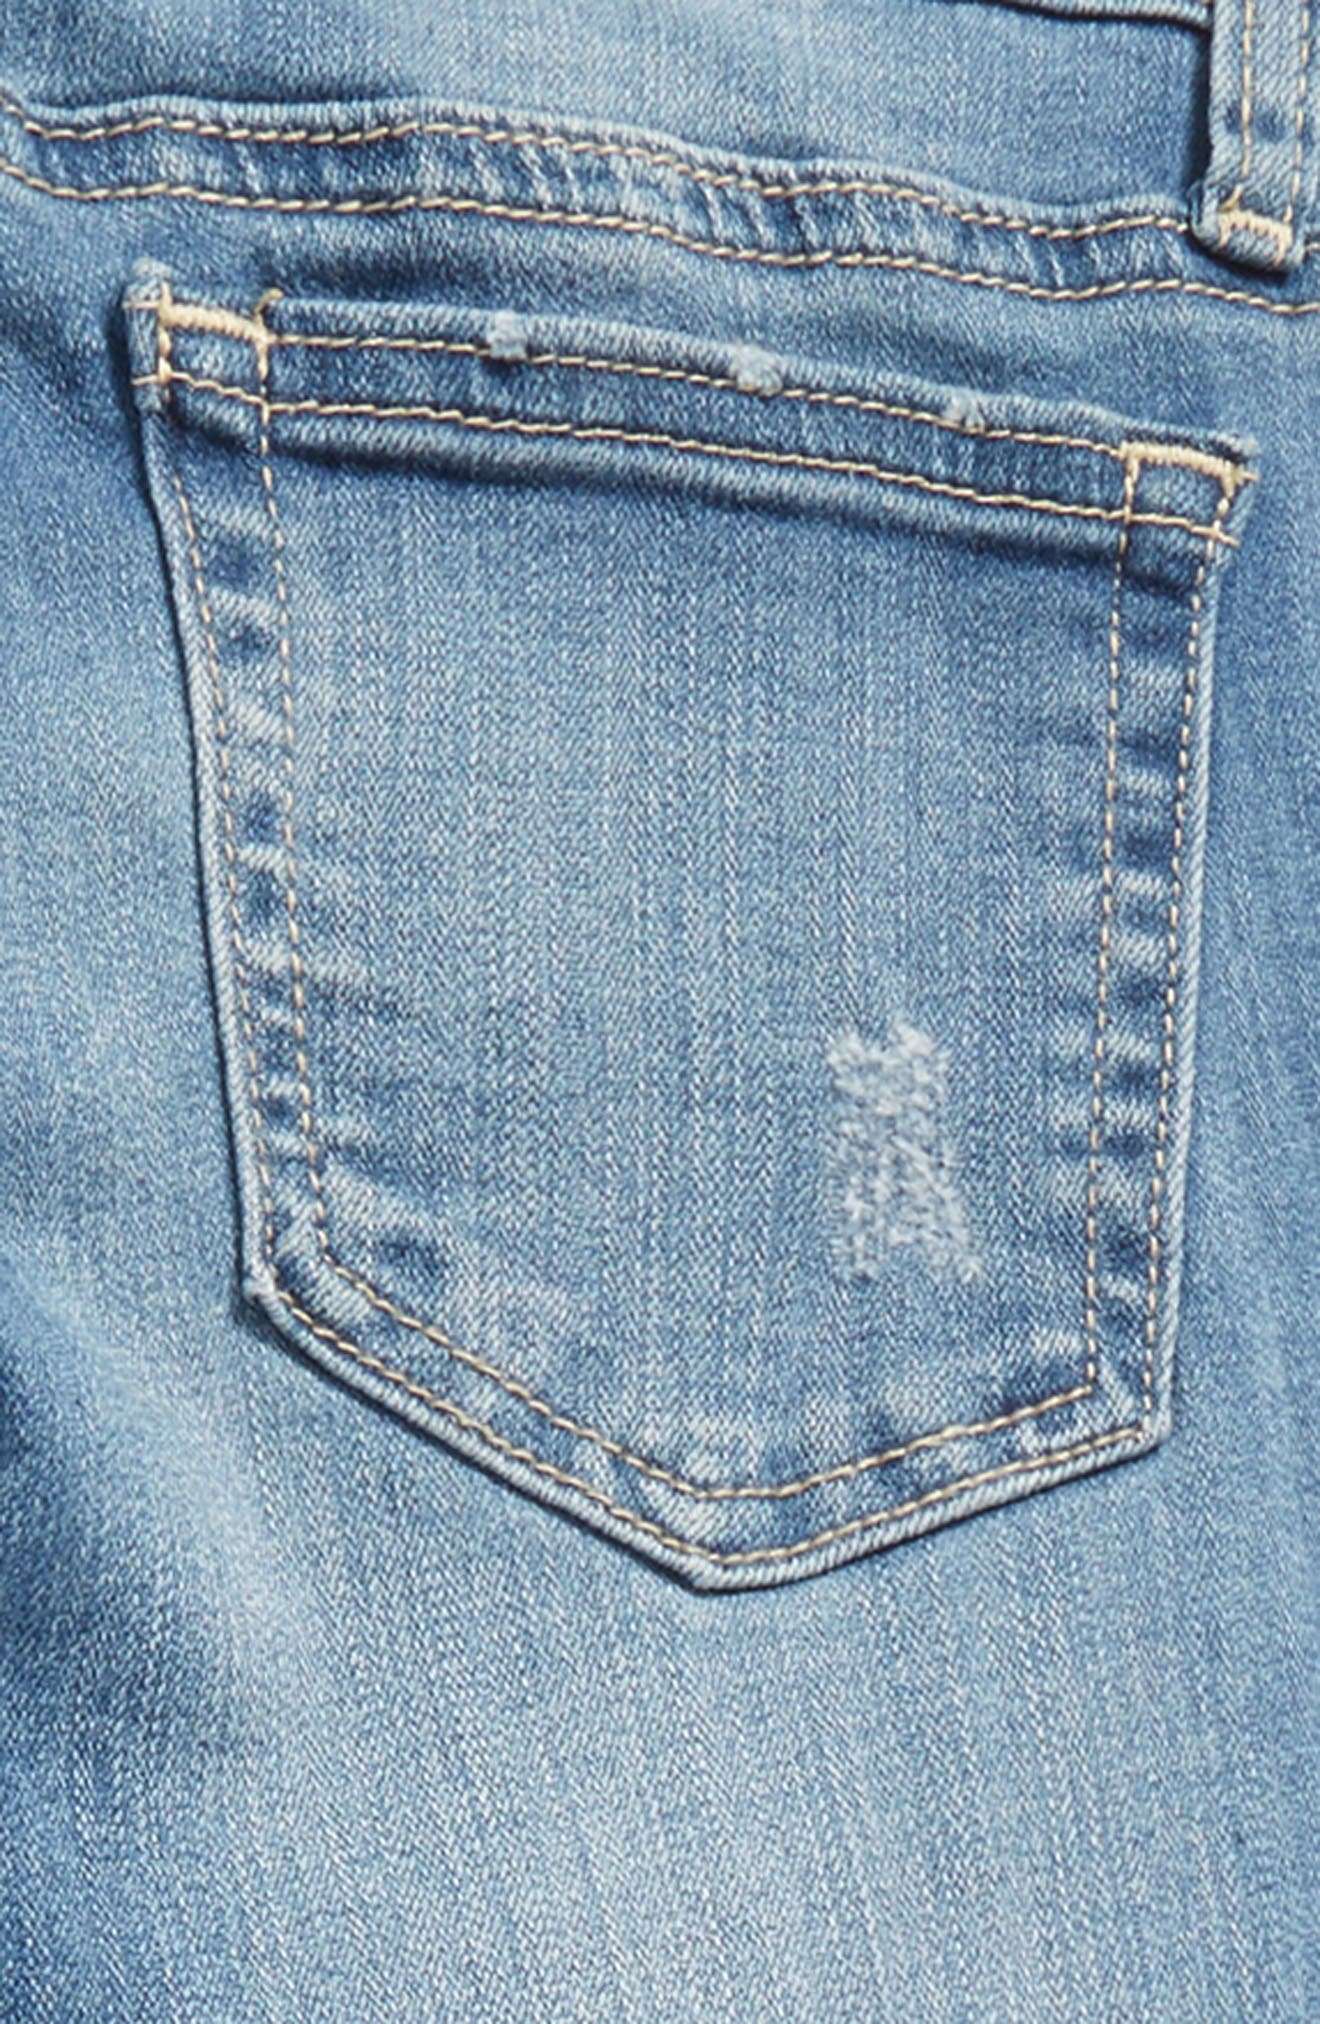 Distressed Cuffed Jeans,                             Alternate thumbnail 3, color,                             492